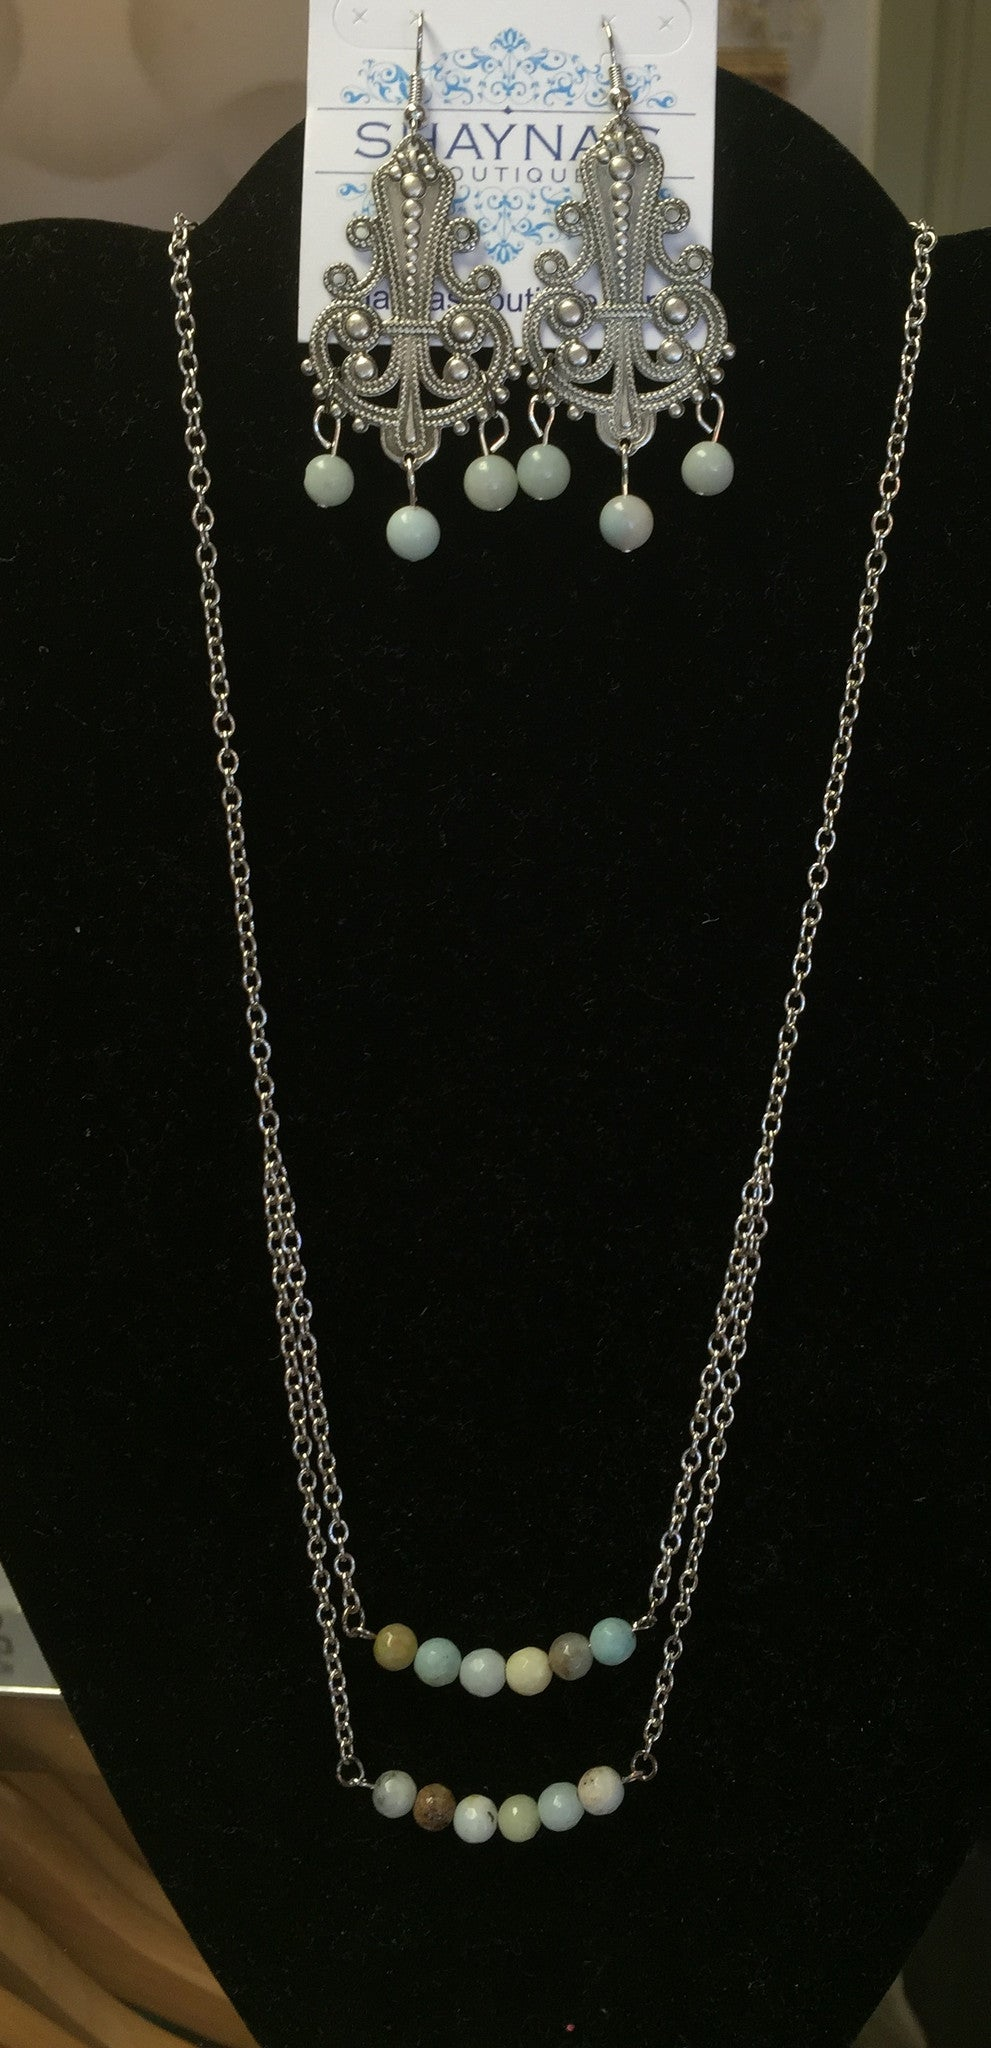 Cedar Canyon Plantation Jewelry's Layered Amazonite Silver Necklace